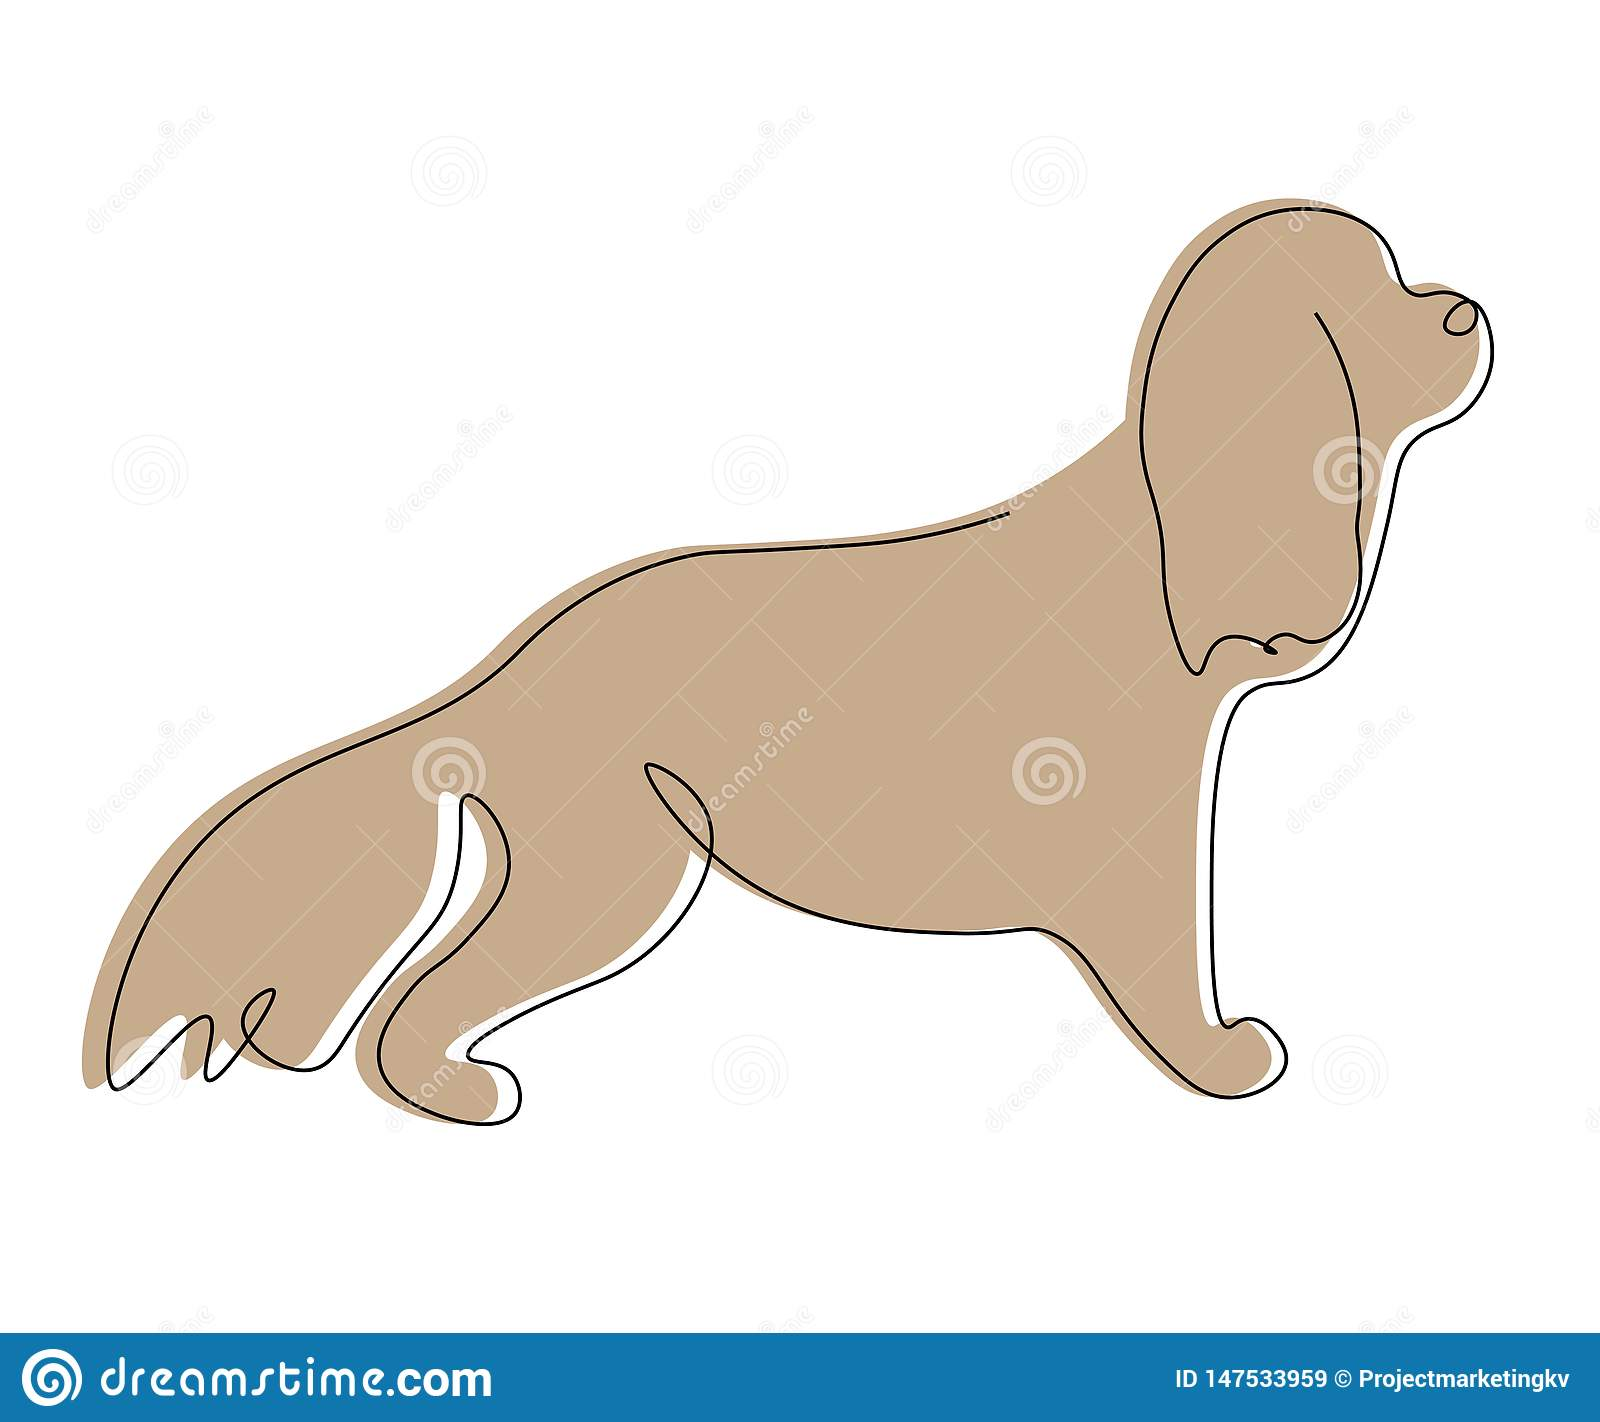 Cocker Spaniel Puppy Line Drawing Vector Illustration Stock Vector Illustration Of Domestic Outline 147533959